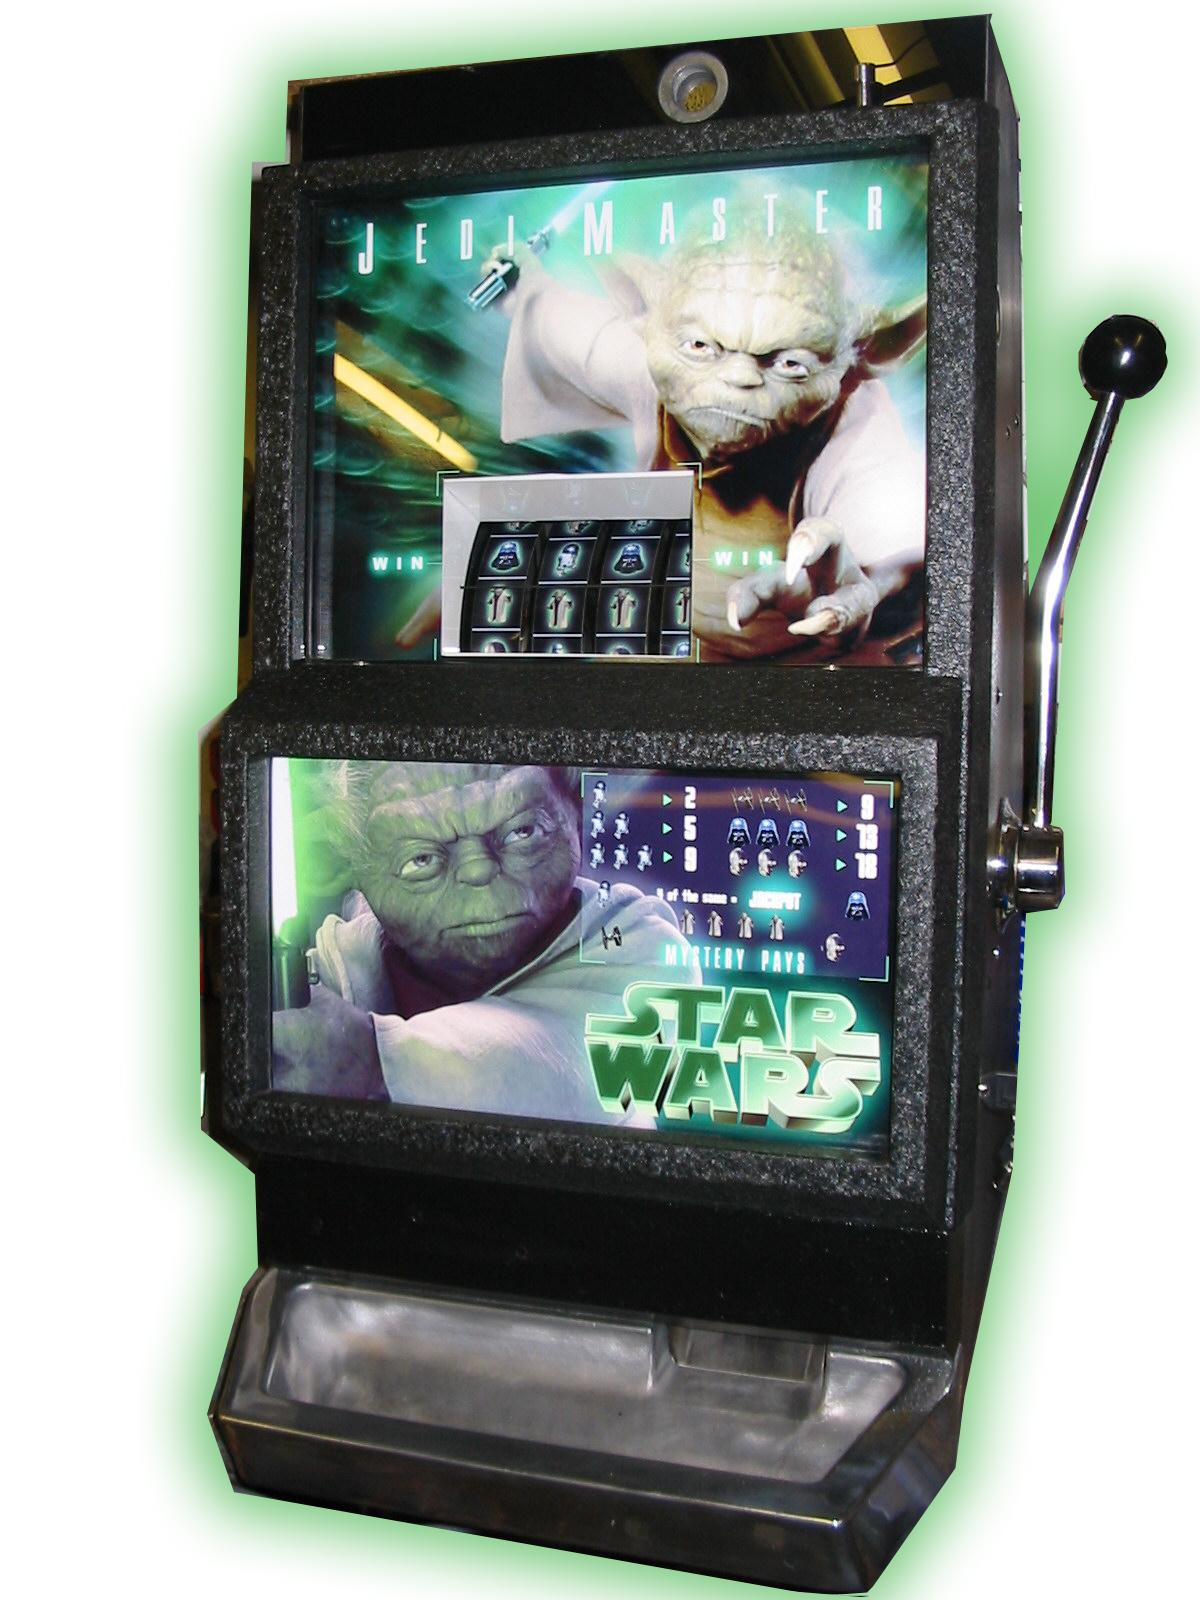 Star Wars Jedi Master One Arm Bandit Liberty Games